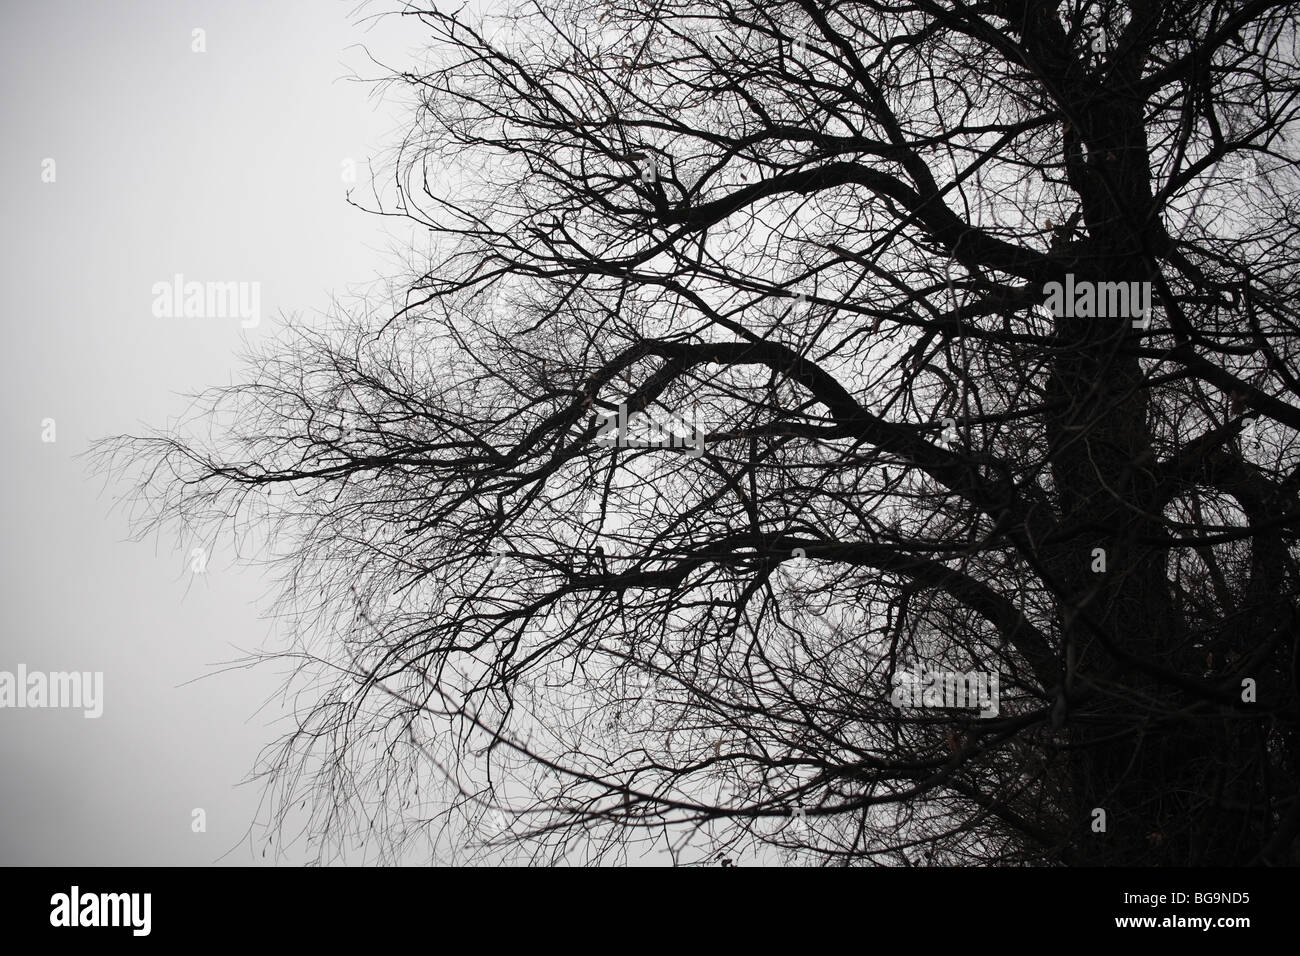 branches silhouette in overcast sky background - Stock Image